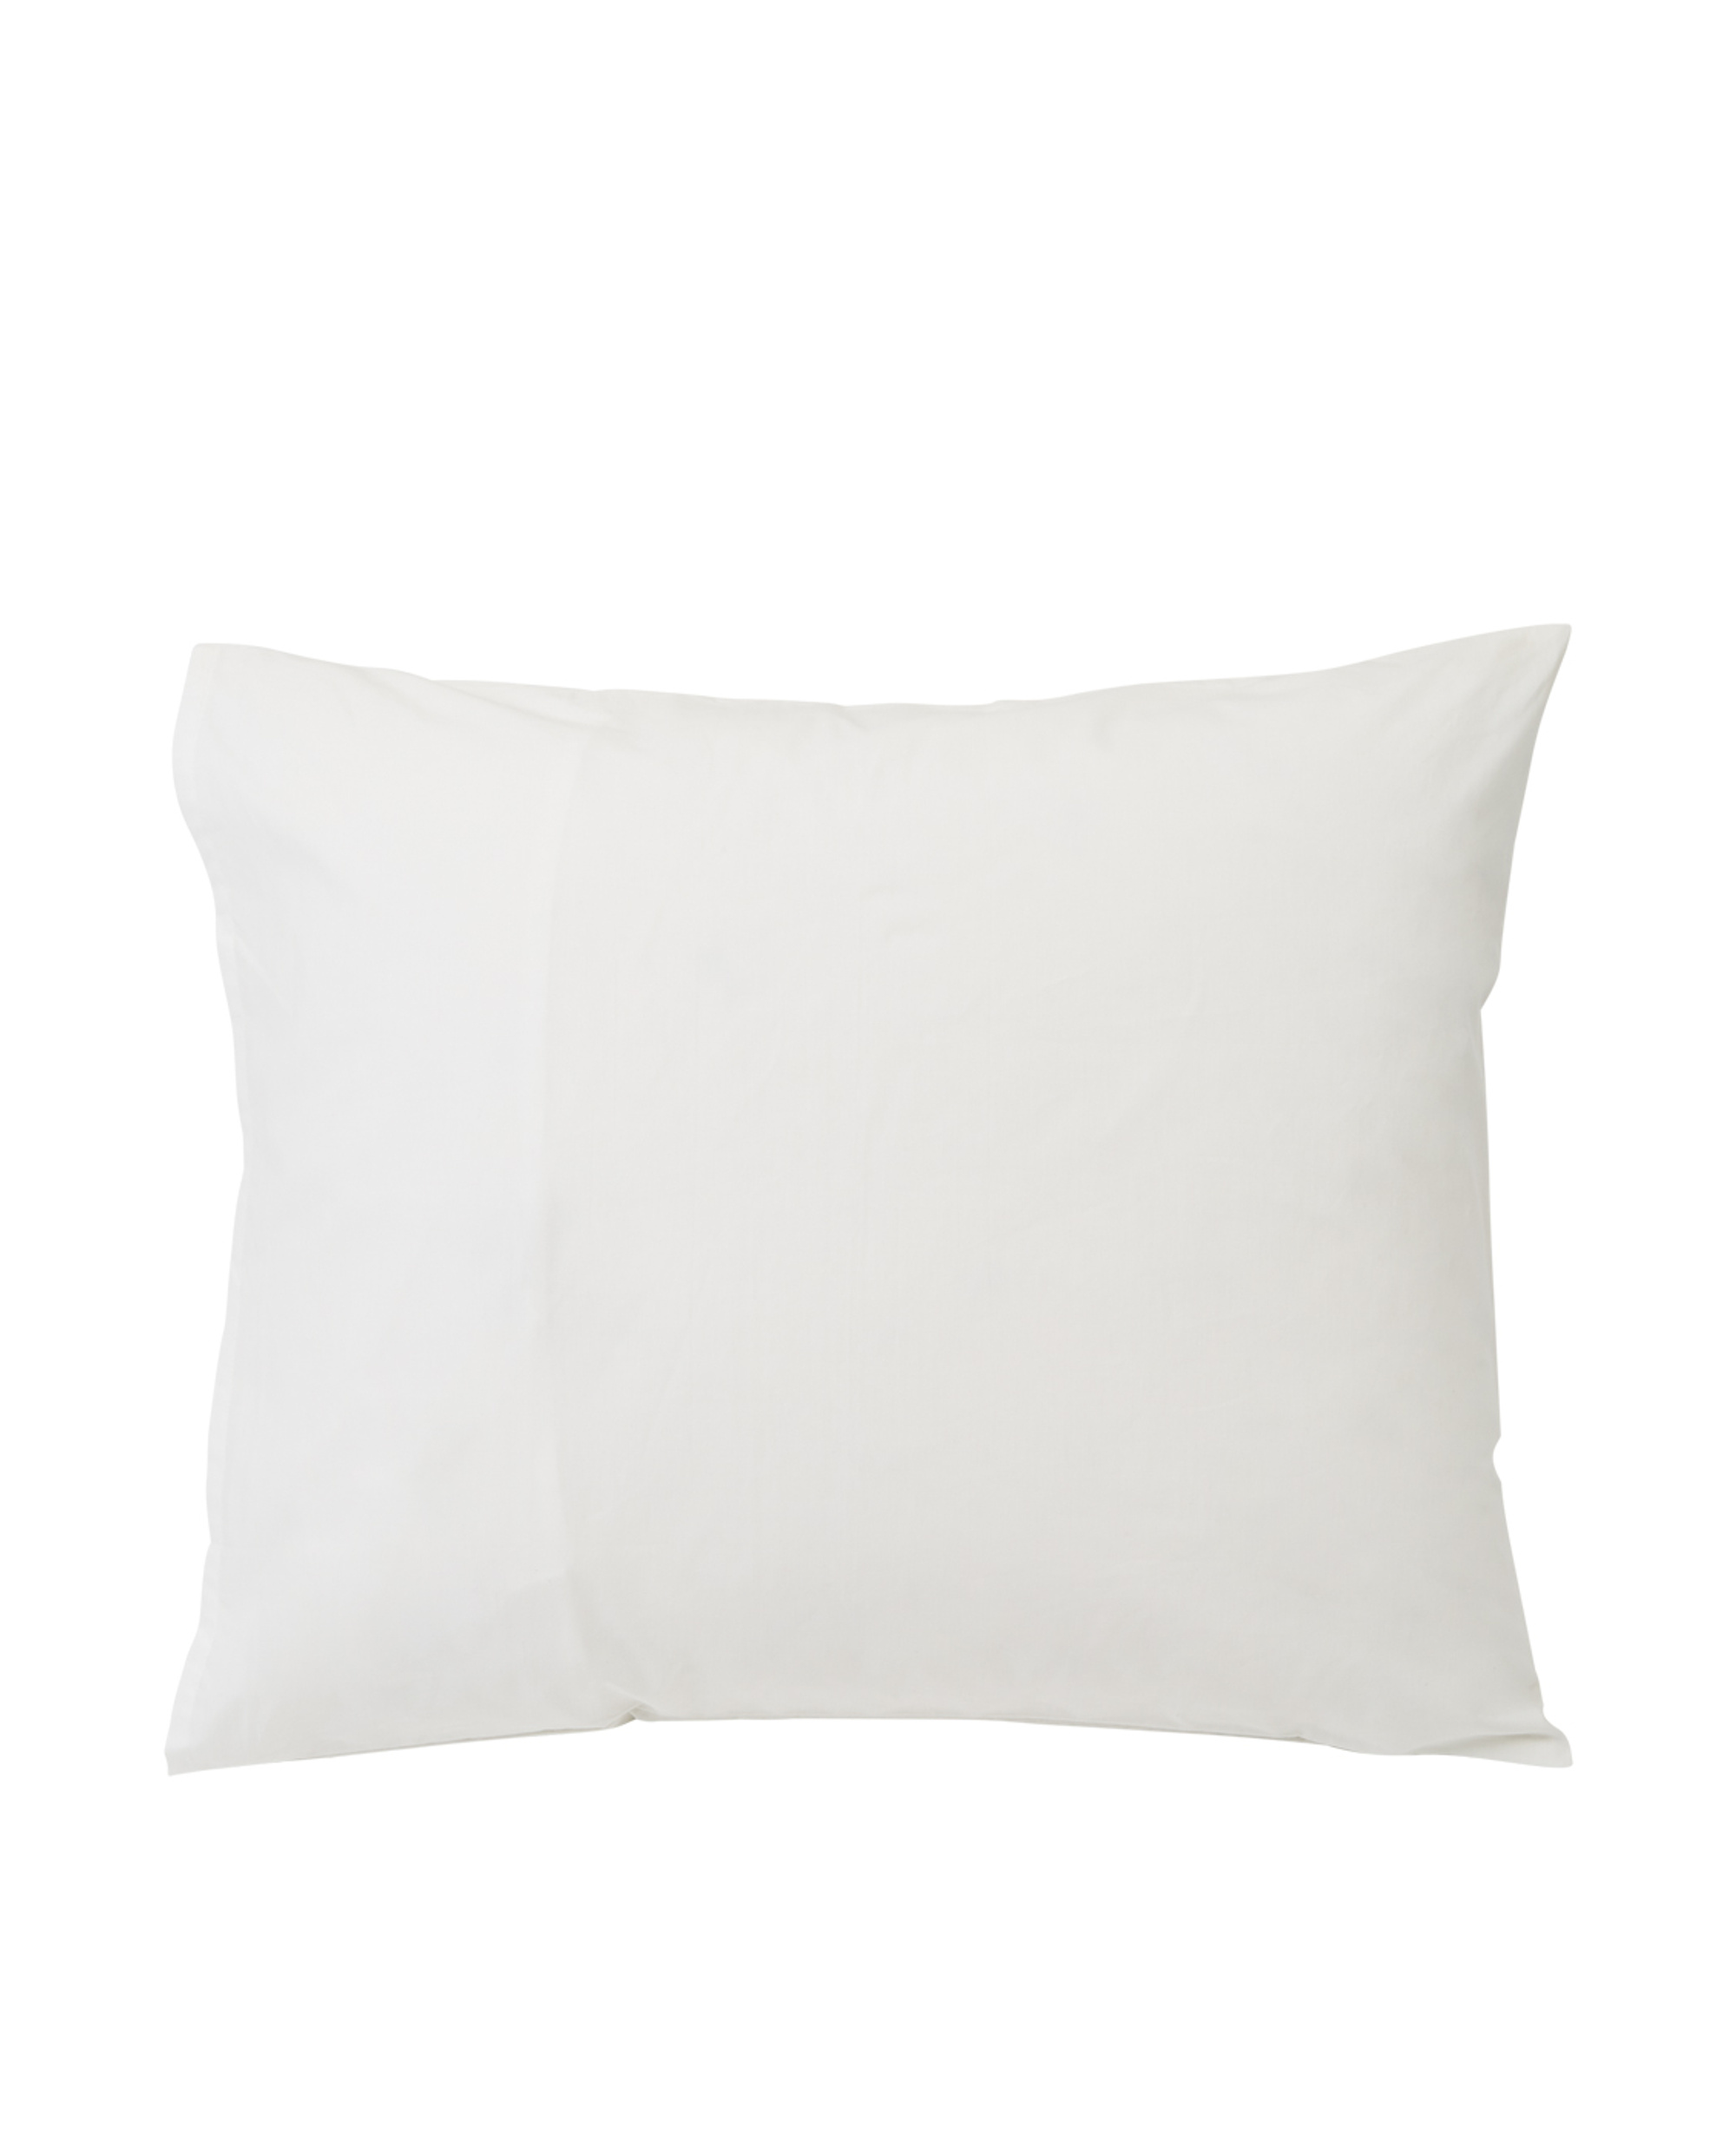 Printed Cotton Poplin Pillowcase